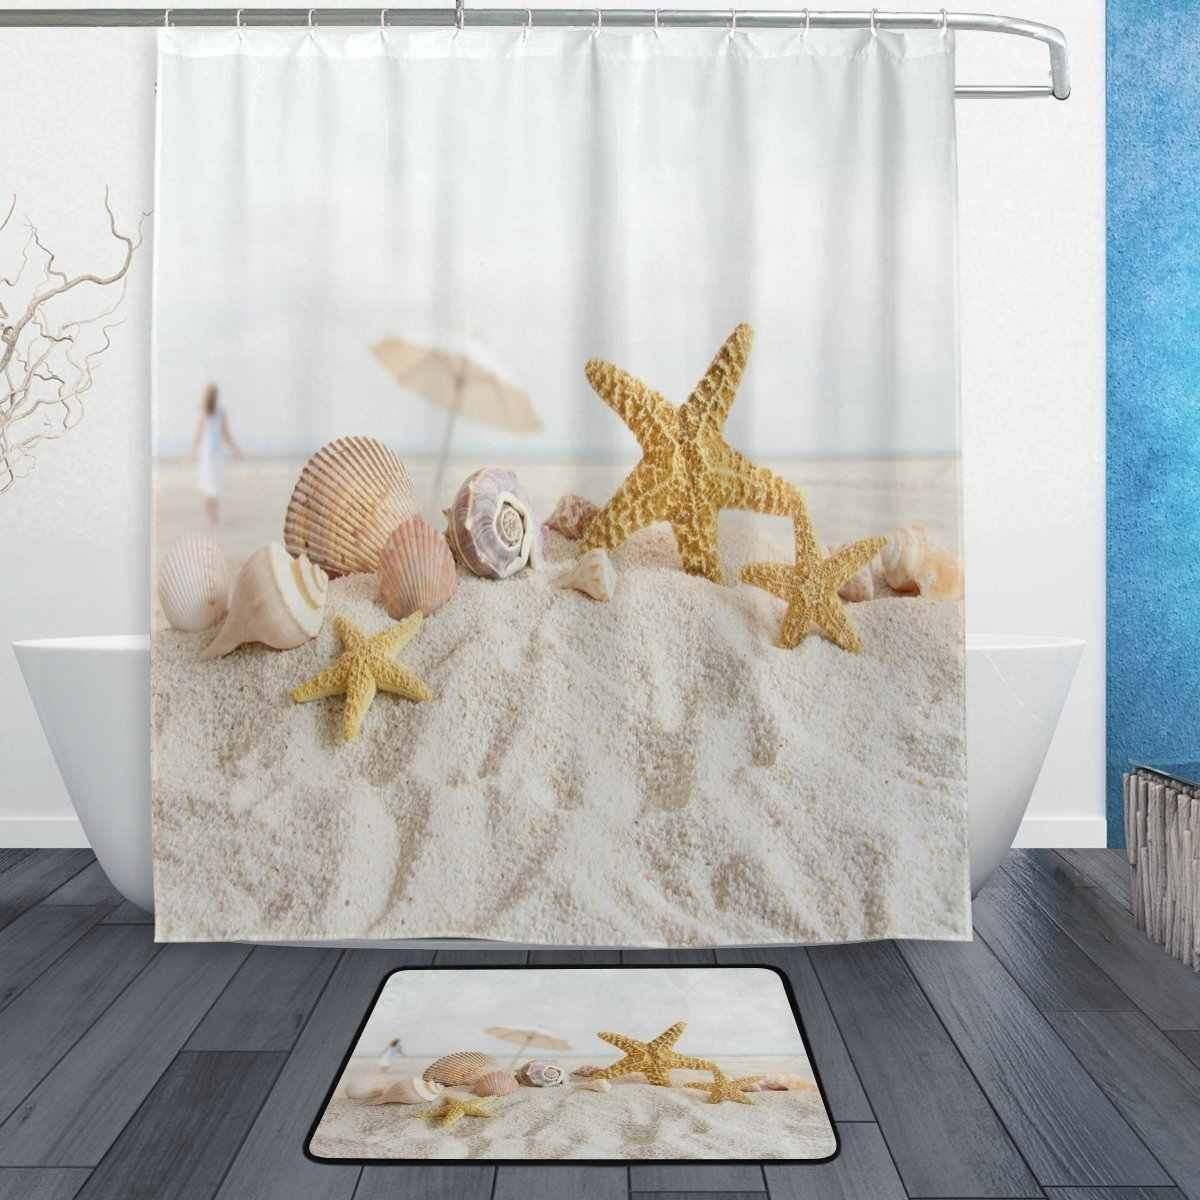 Ocean Beach Sea Theme Shower Curtain and Mat Set, Starfish Seashell Waterproof Fabric Bathroom Curtain Modern